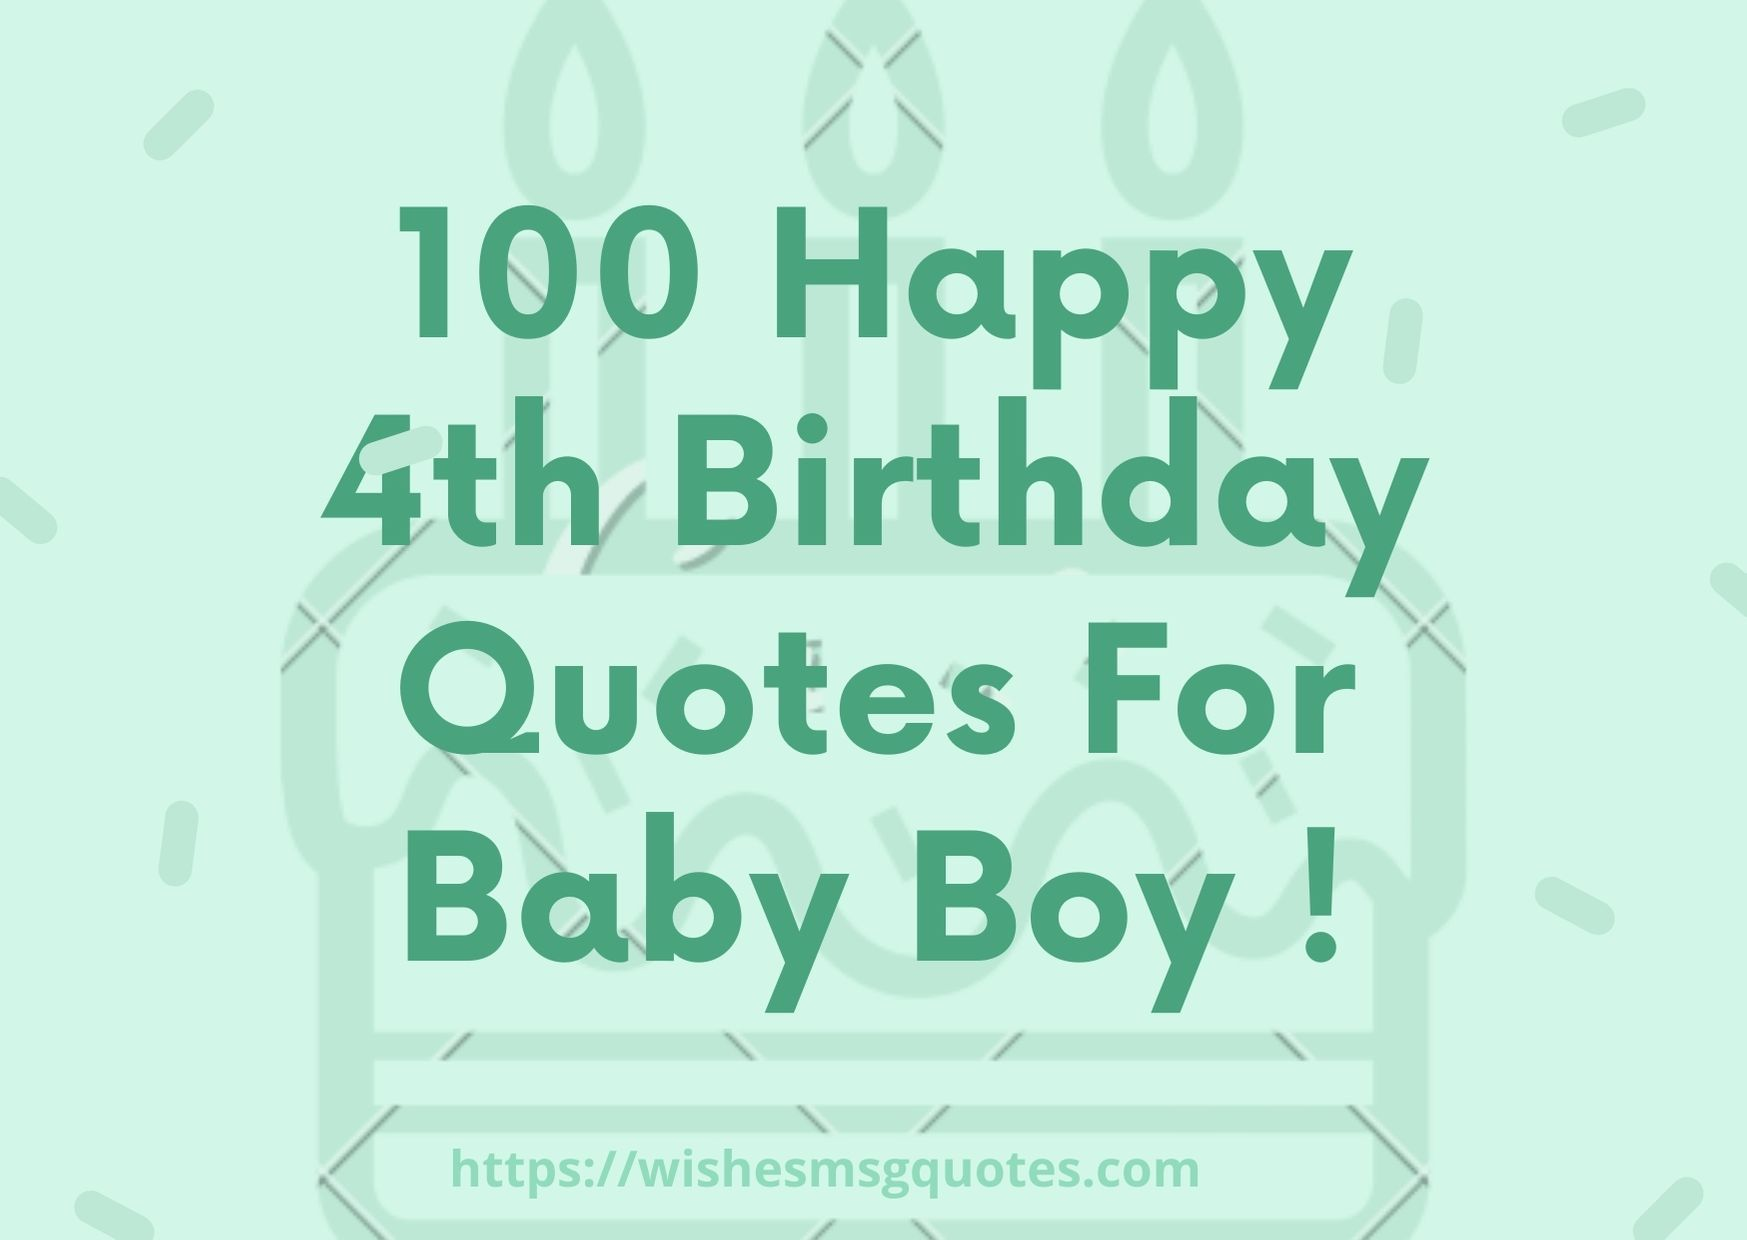 100 Happy 4th Birthday Quotes For Baby Boy